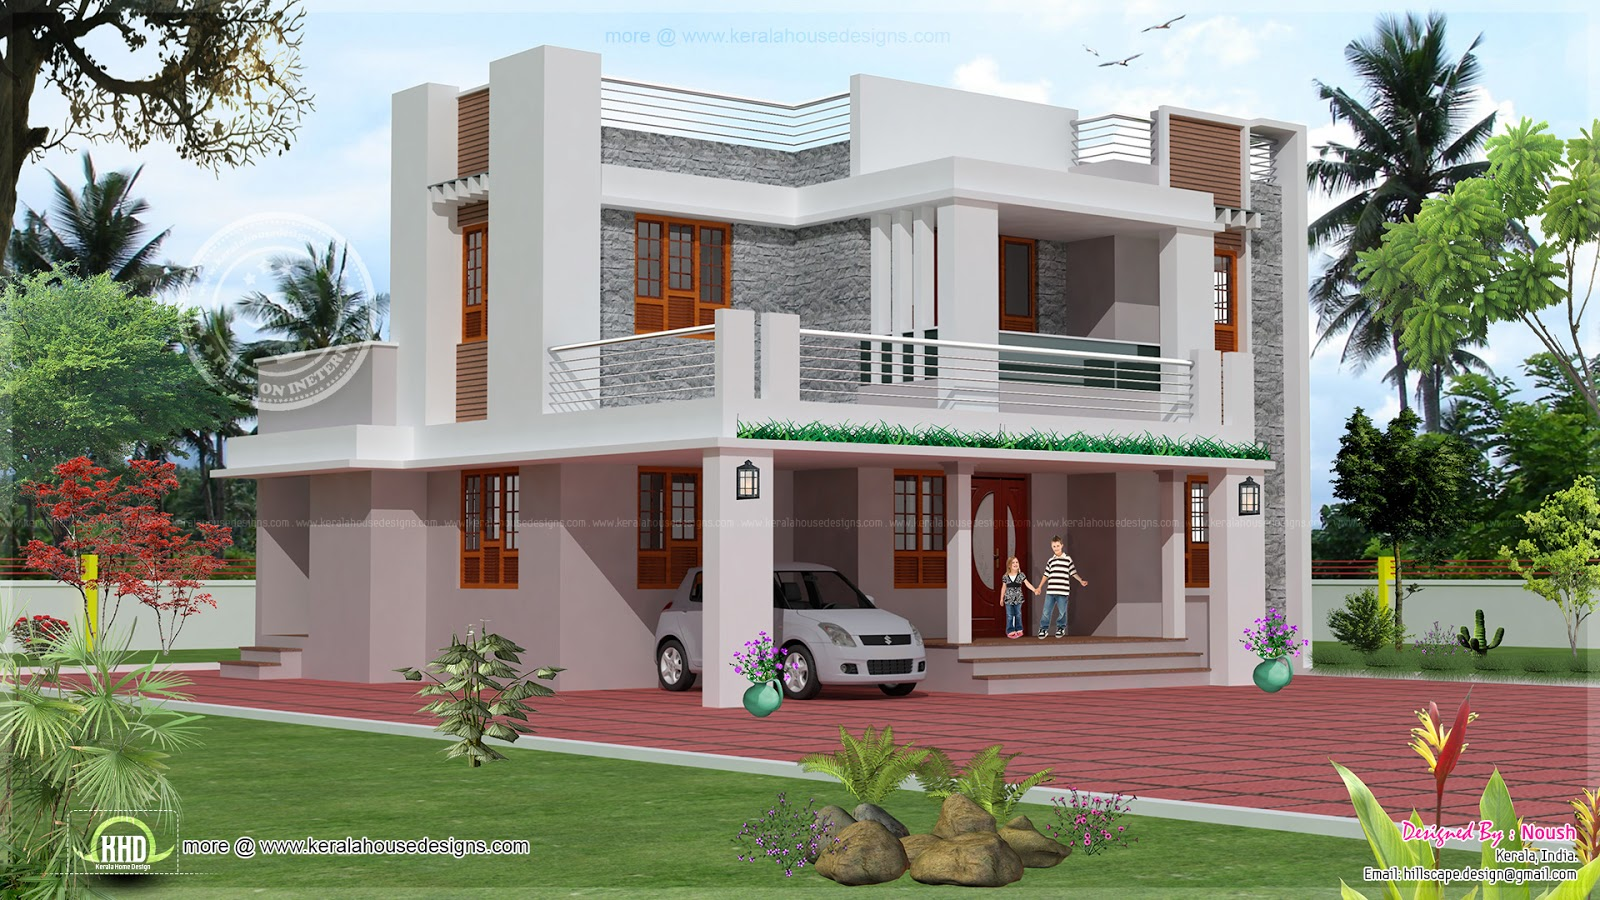 4 bedroom 2 story house exterior design home kerala plans for House front model design